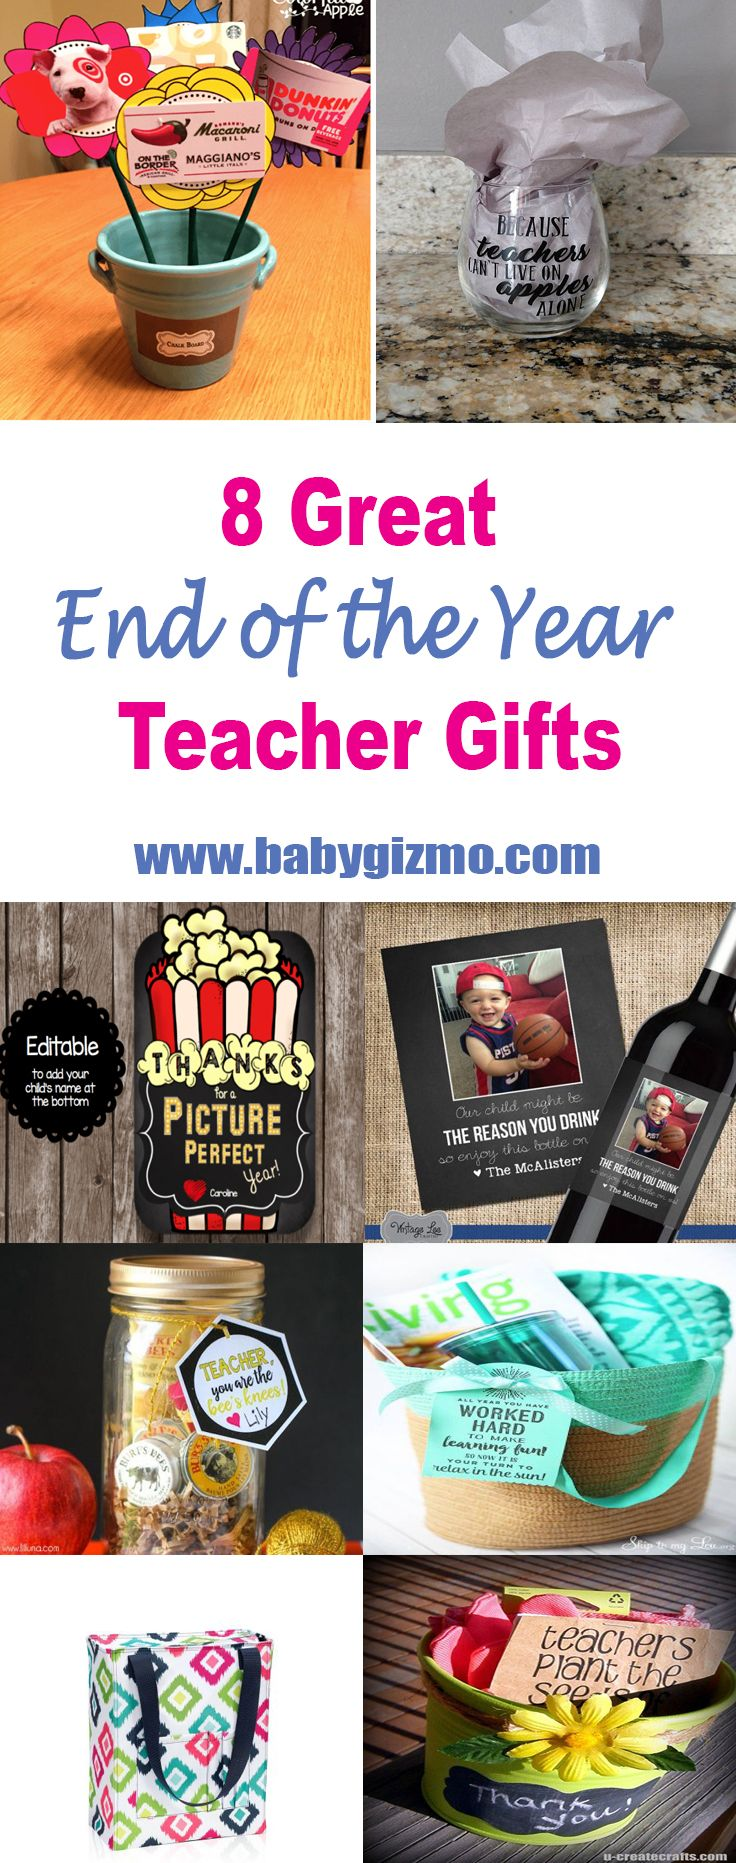 8 Great End of the Year Teacher Gifts! #TeacherGifts #BabyGizmo